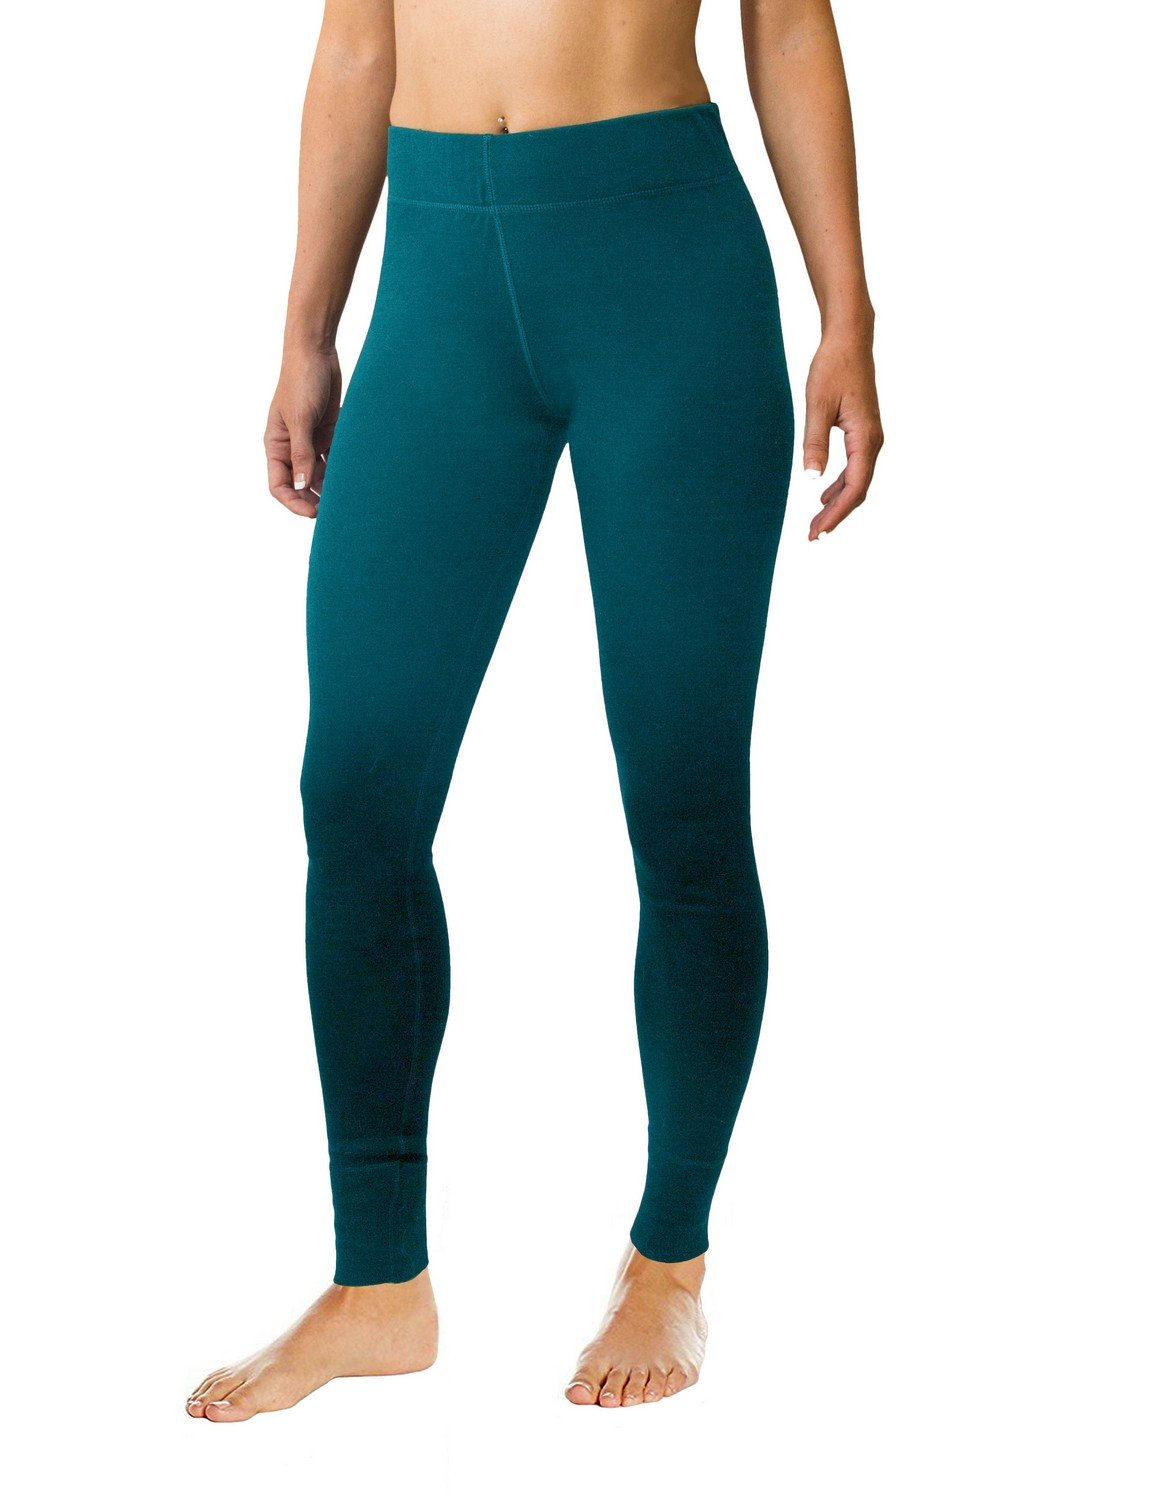 WoolX Avery- Women's Wool Leggings- Midweight Merino Base Layer Bottoms- Warm and Soft- Midnight Teal- 2XL